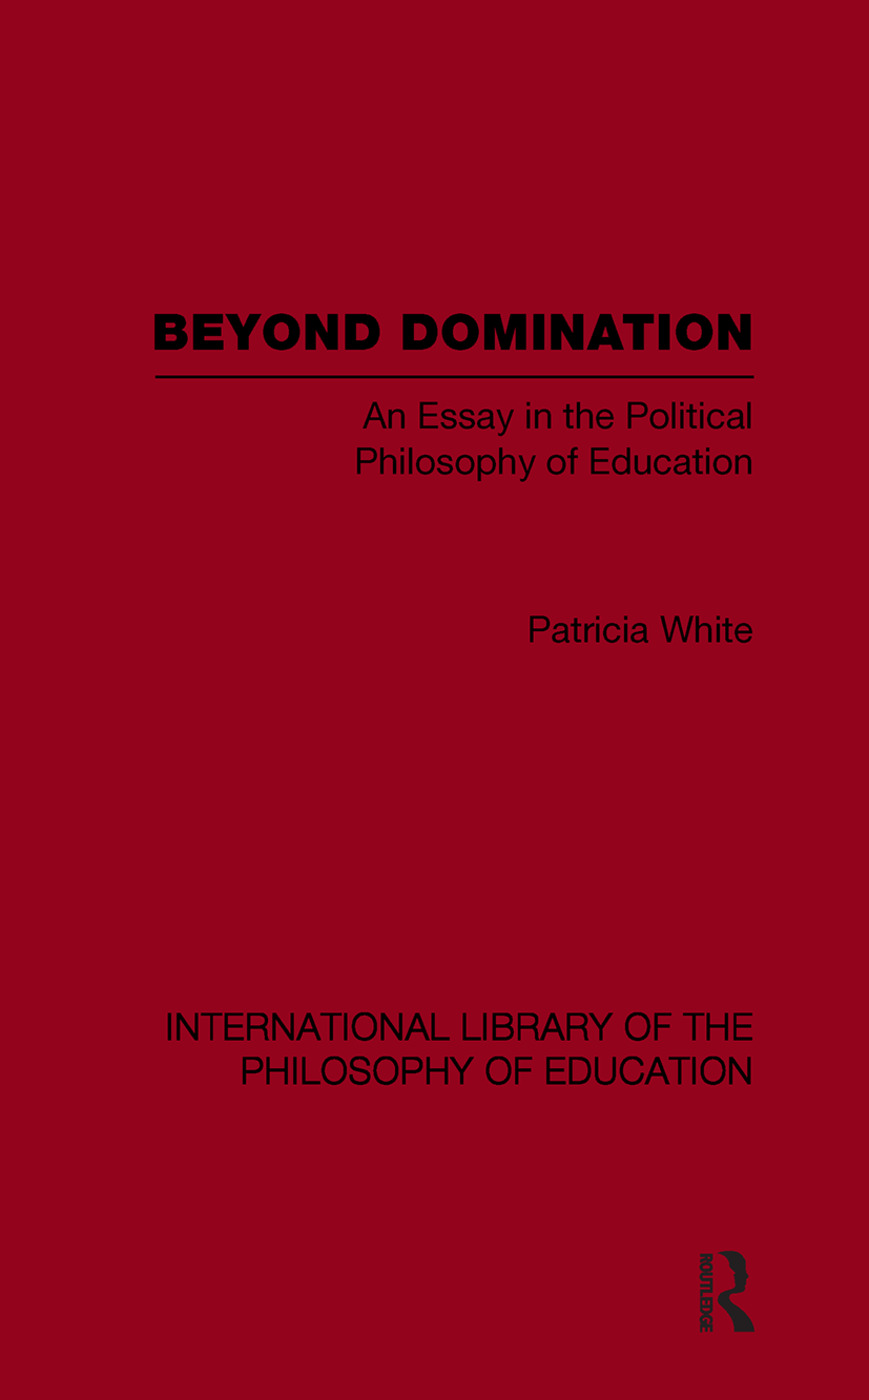 Beyond Domination (International Library of the Philosophy of Education Volume 23)